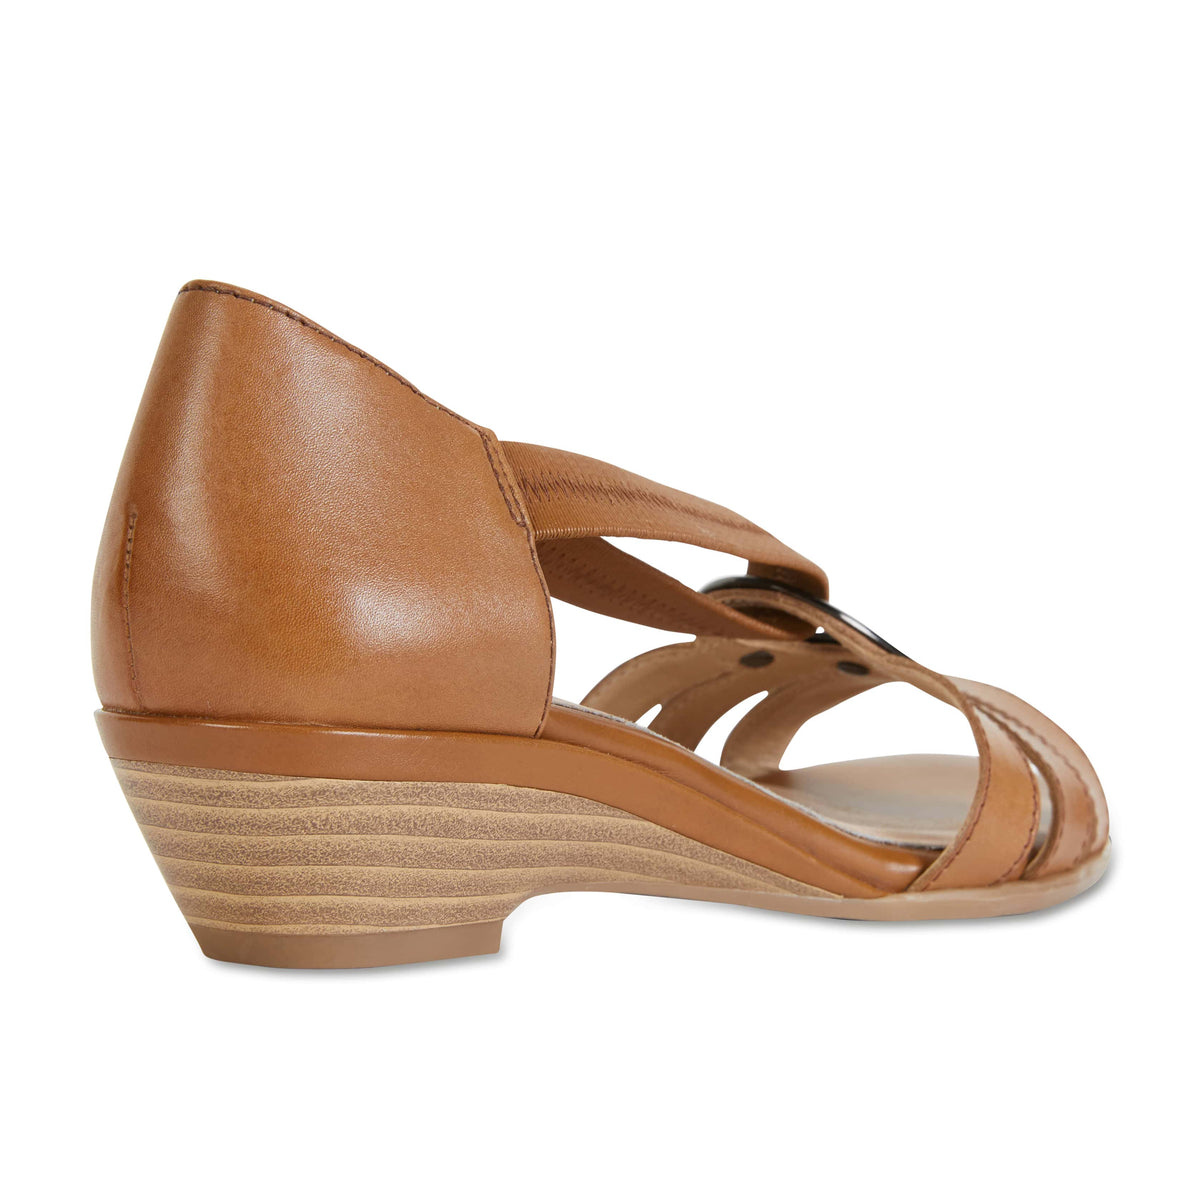 Corina Sandal in Cognac Leather